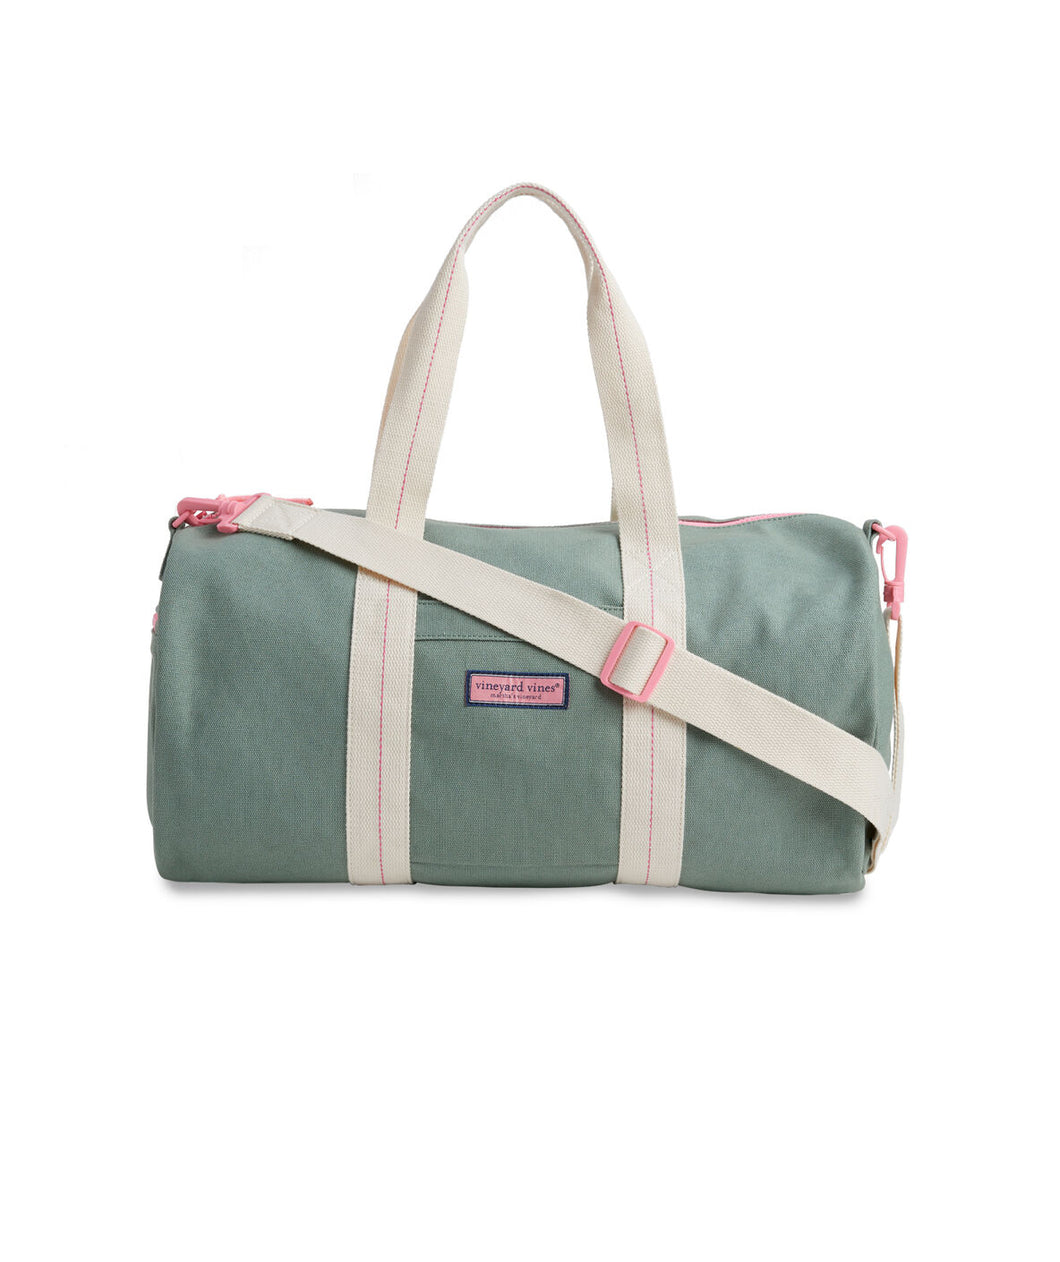 Vineyard Vines Pink & Green Duffel Bag